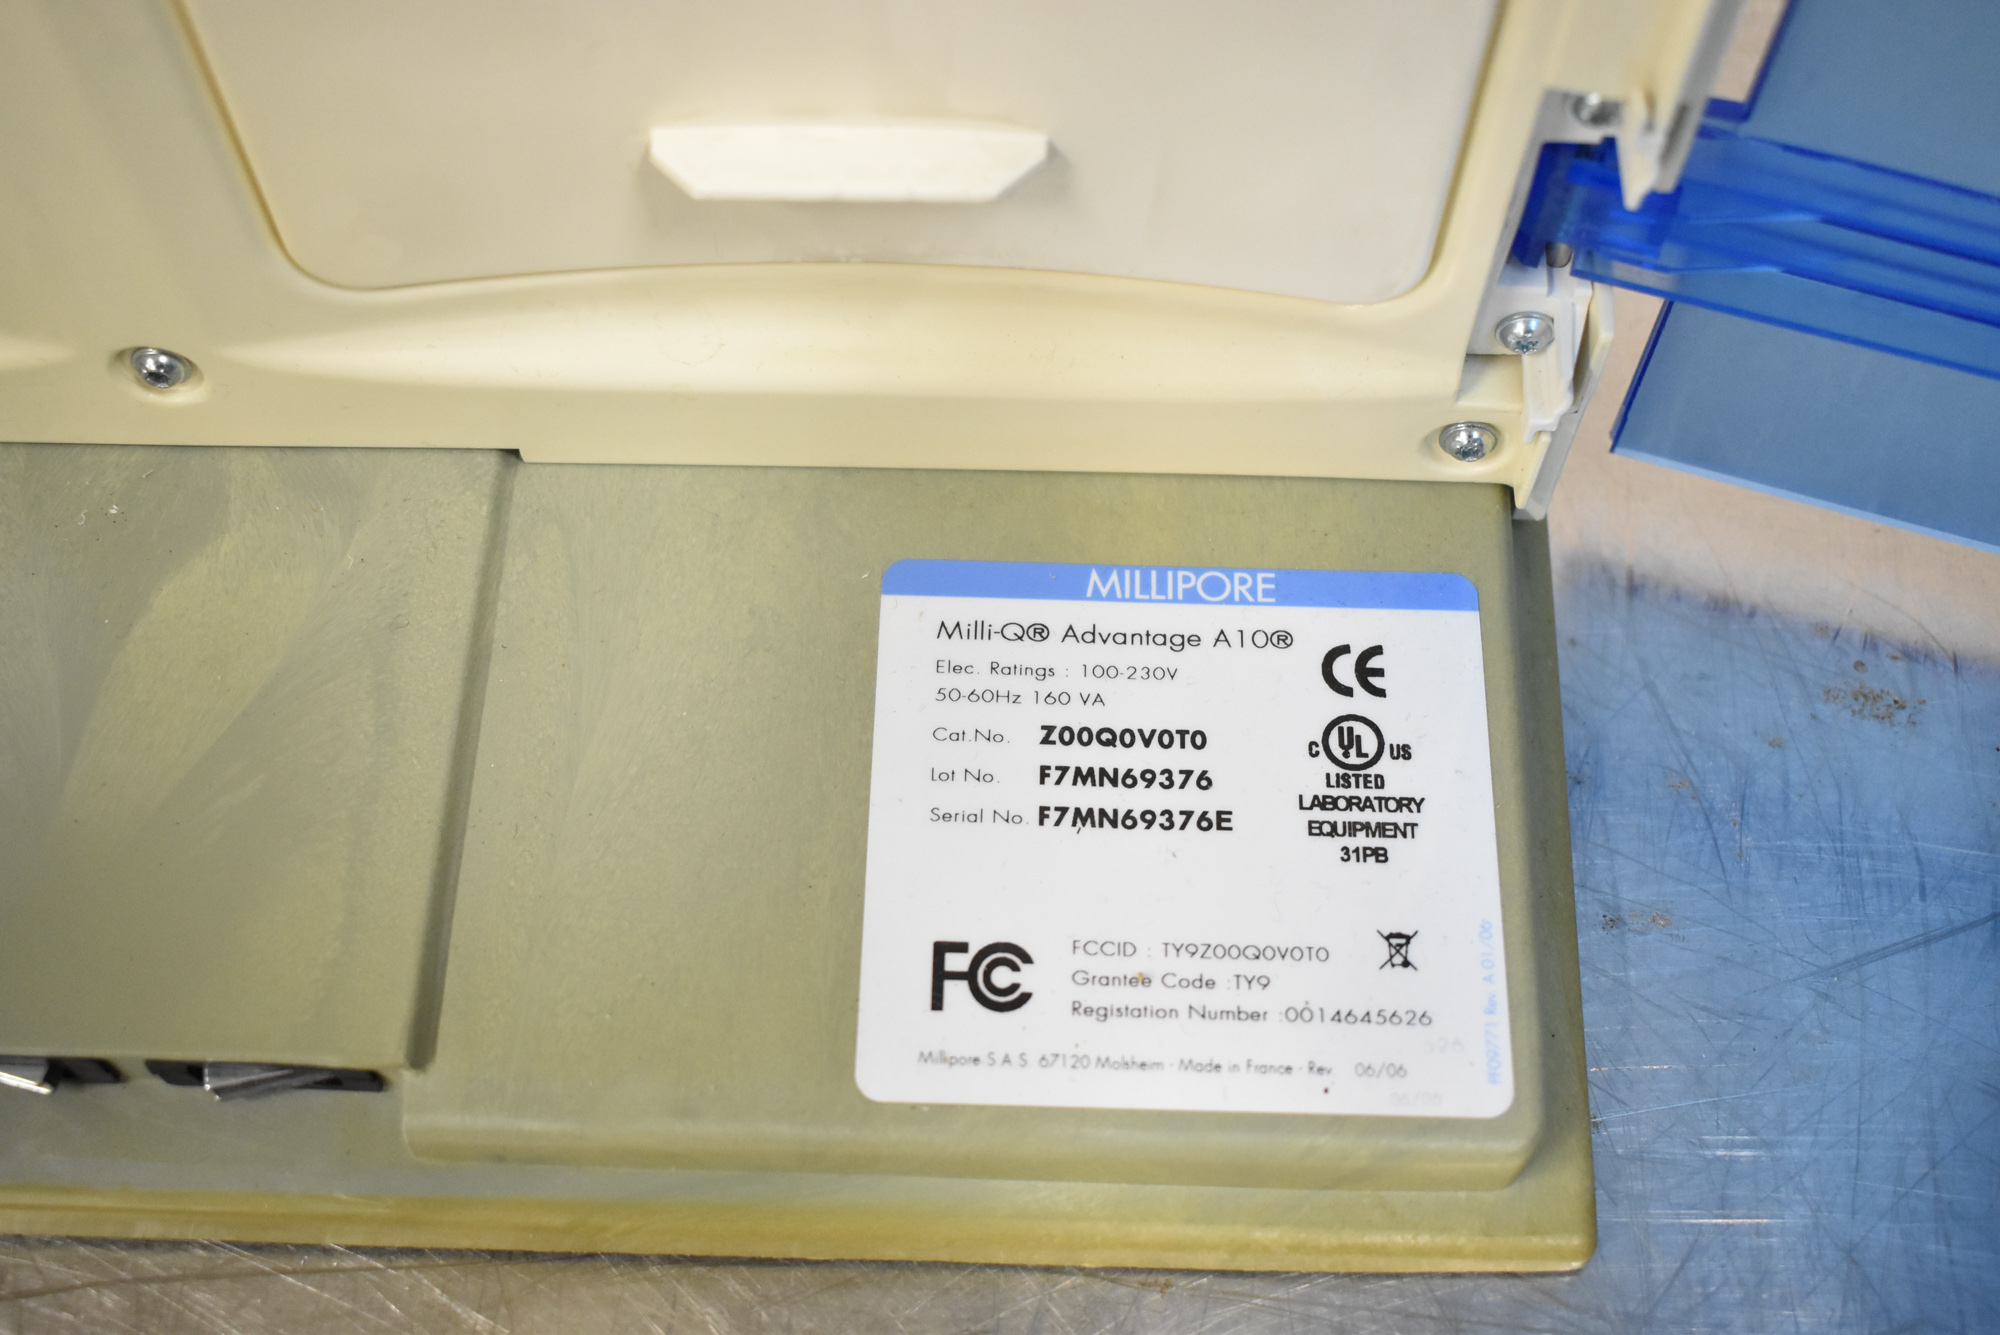 MILLIPORE MILLI-Q ADVANTAGE A10 BENCH TYPE DIGITAL WATER PURIFICATION SYSTEM, S/N F7MN699376E [$25 - Image 5 of 5